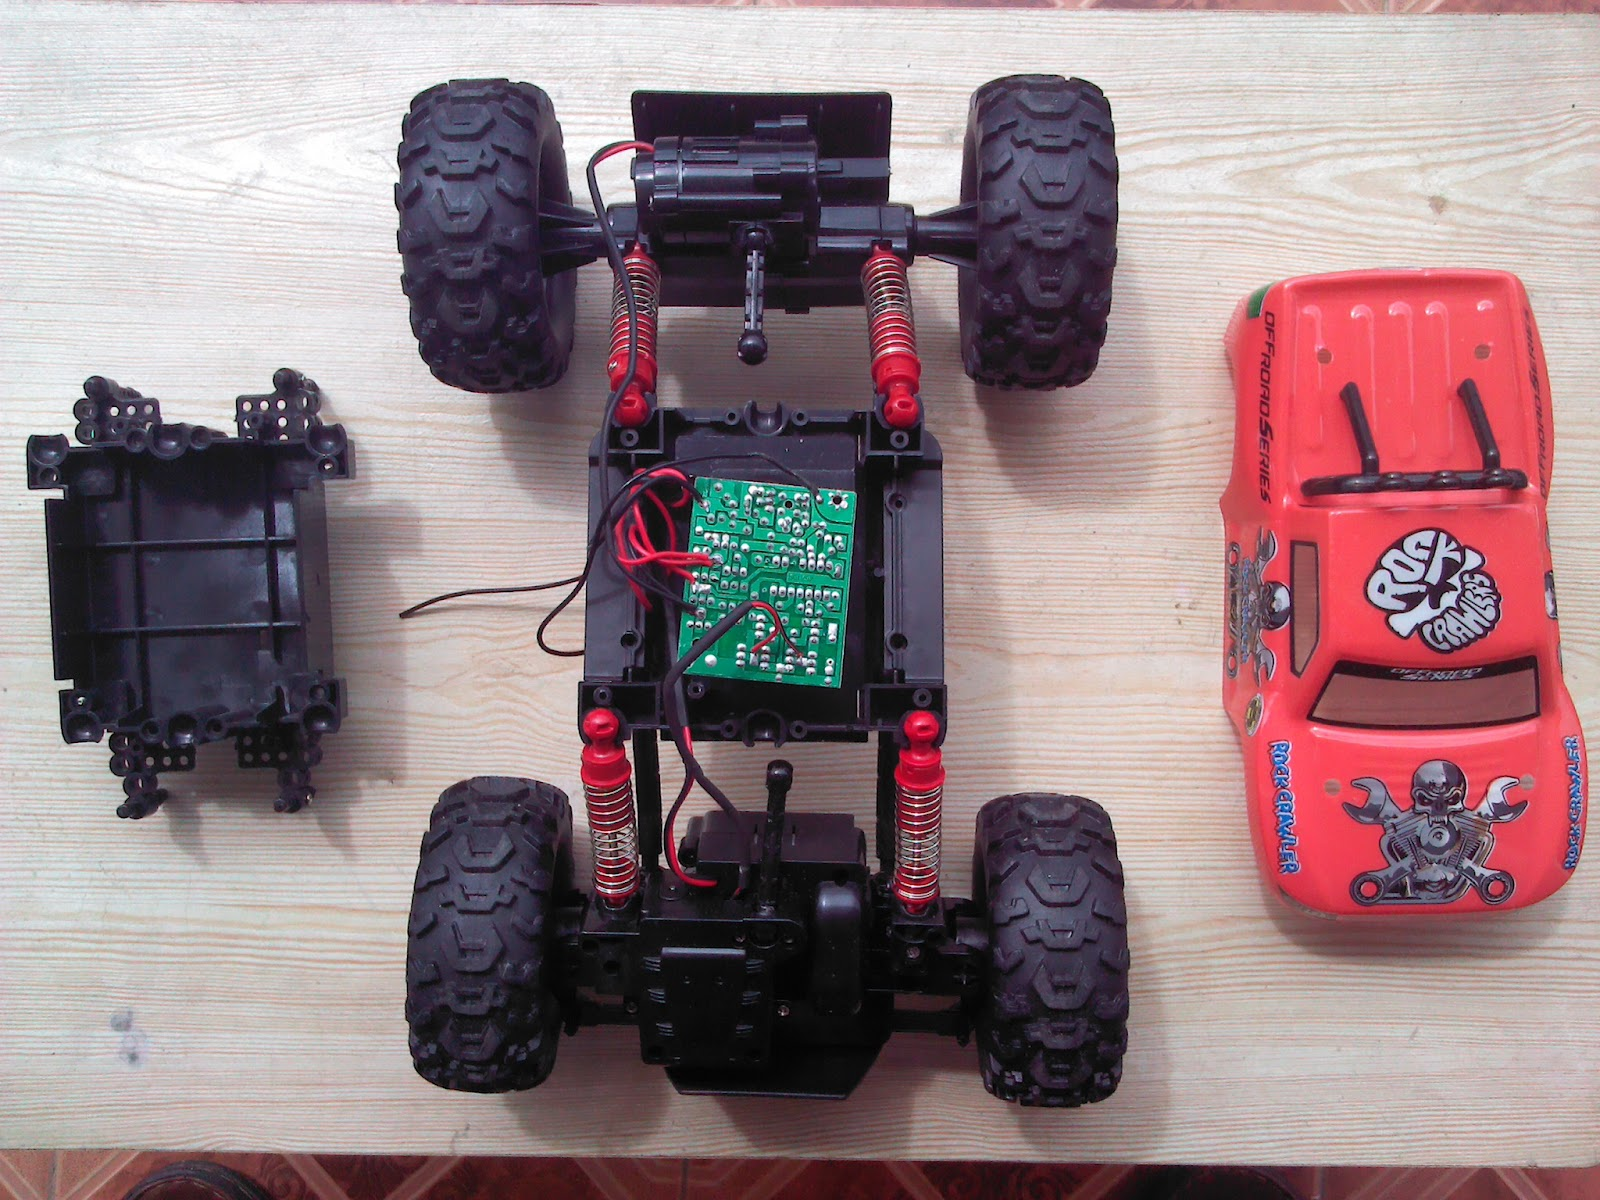 Android Arduino Control Rc Car Wiring Schematic Hardware And Ioio Board Diagram